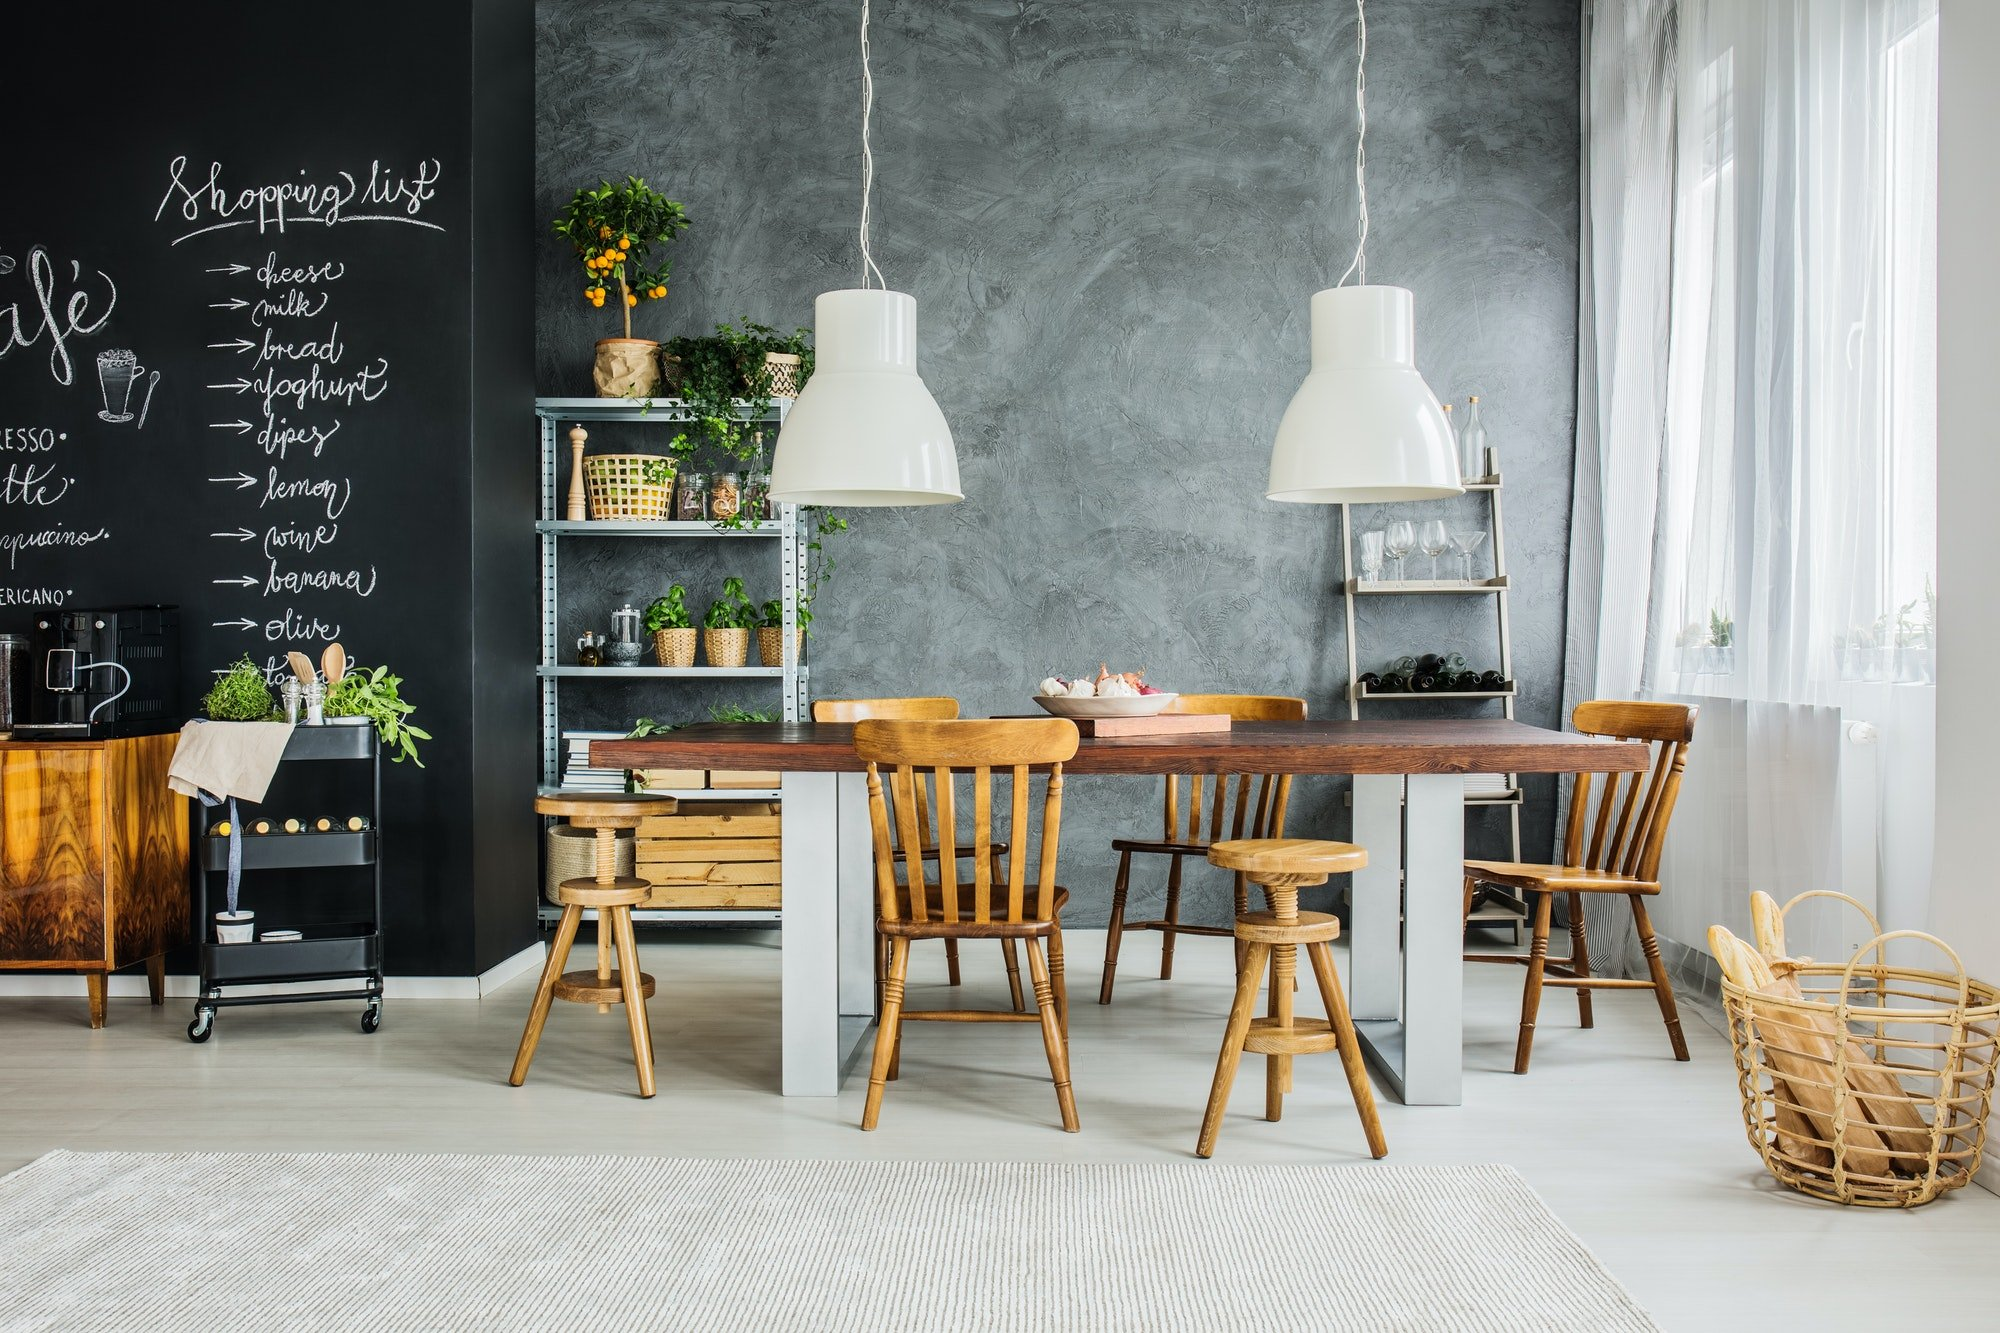 things to know about chalkboard paint